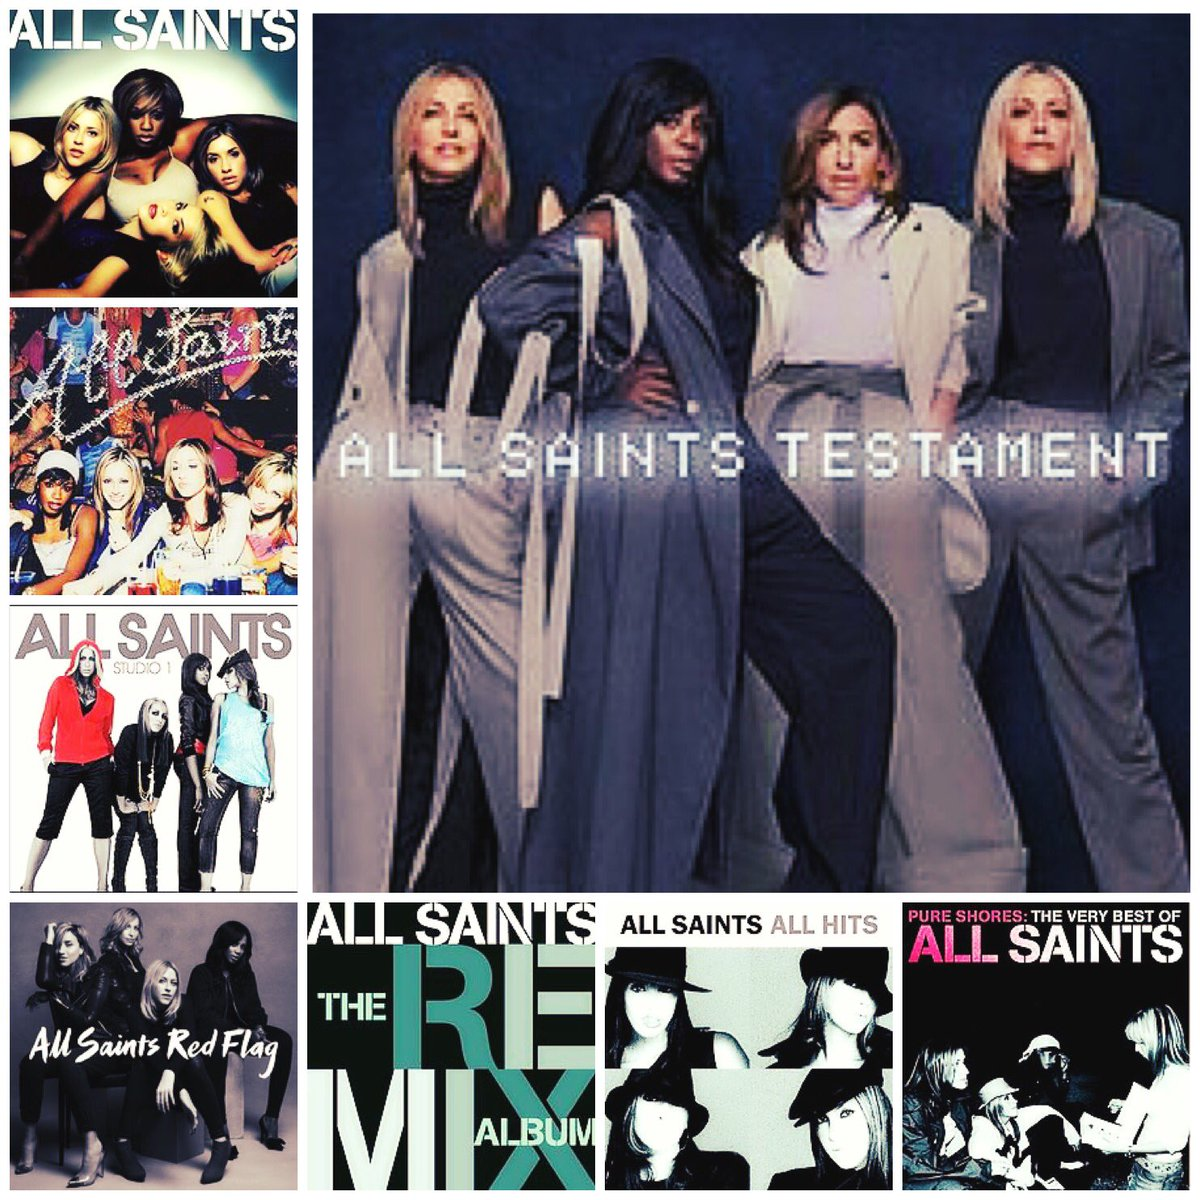 All Saints on Twitter: